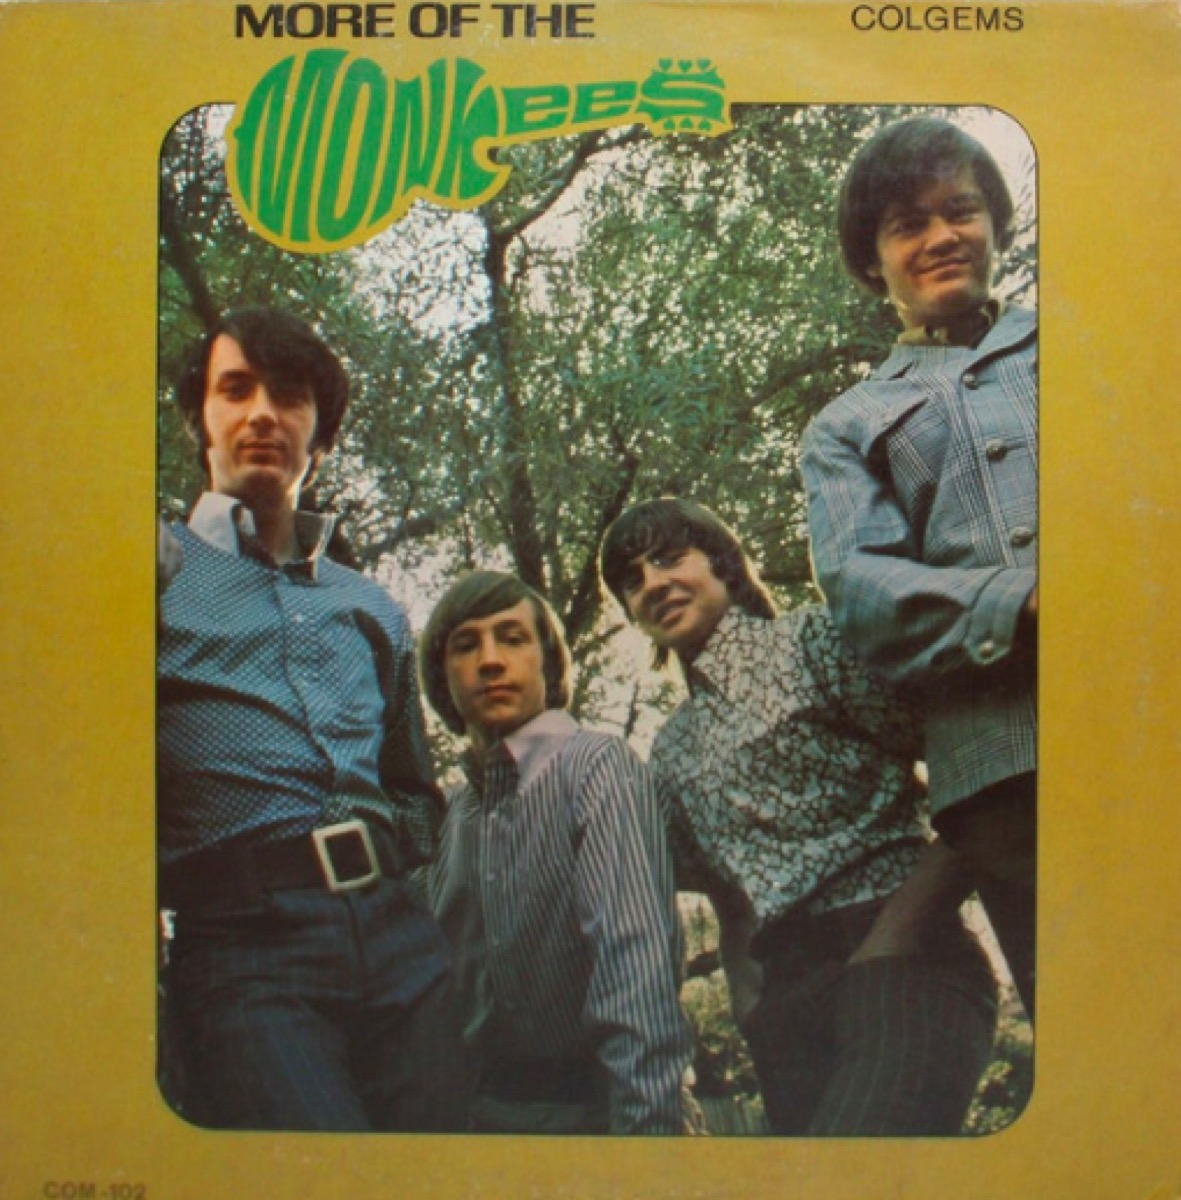 More of the Monkees album